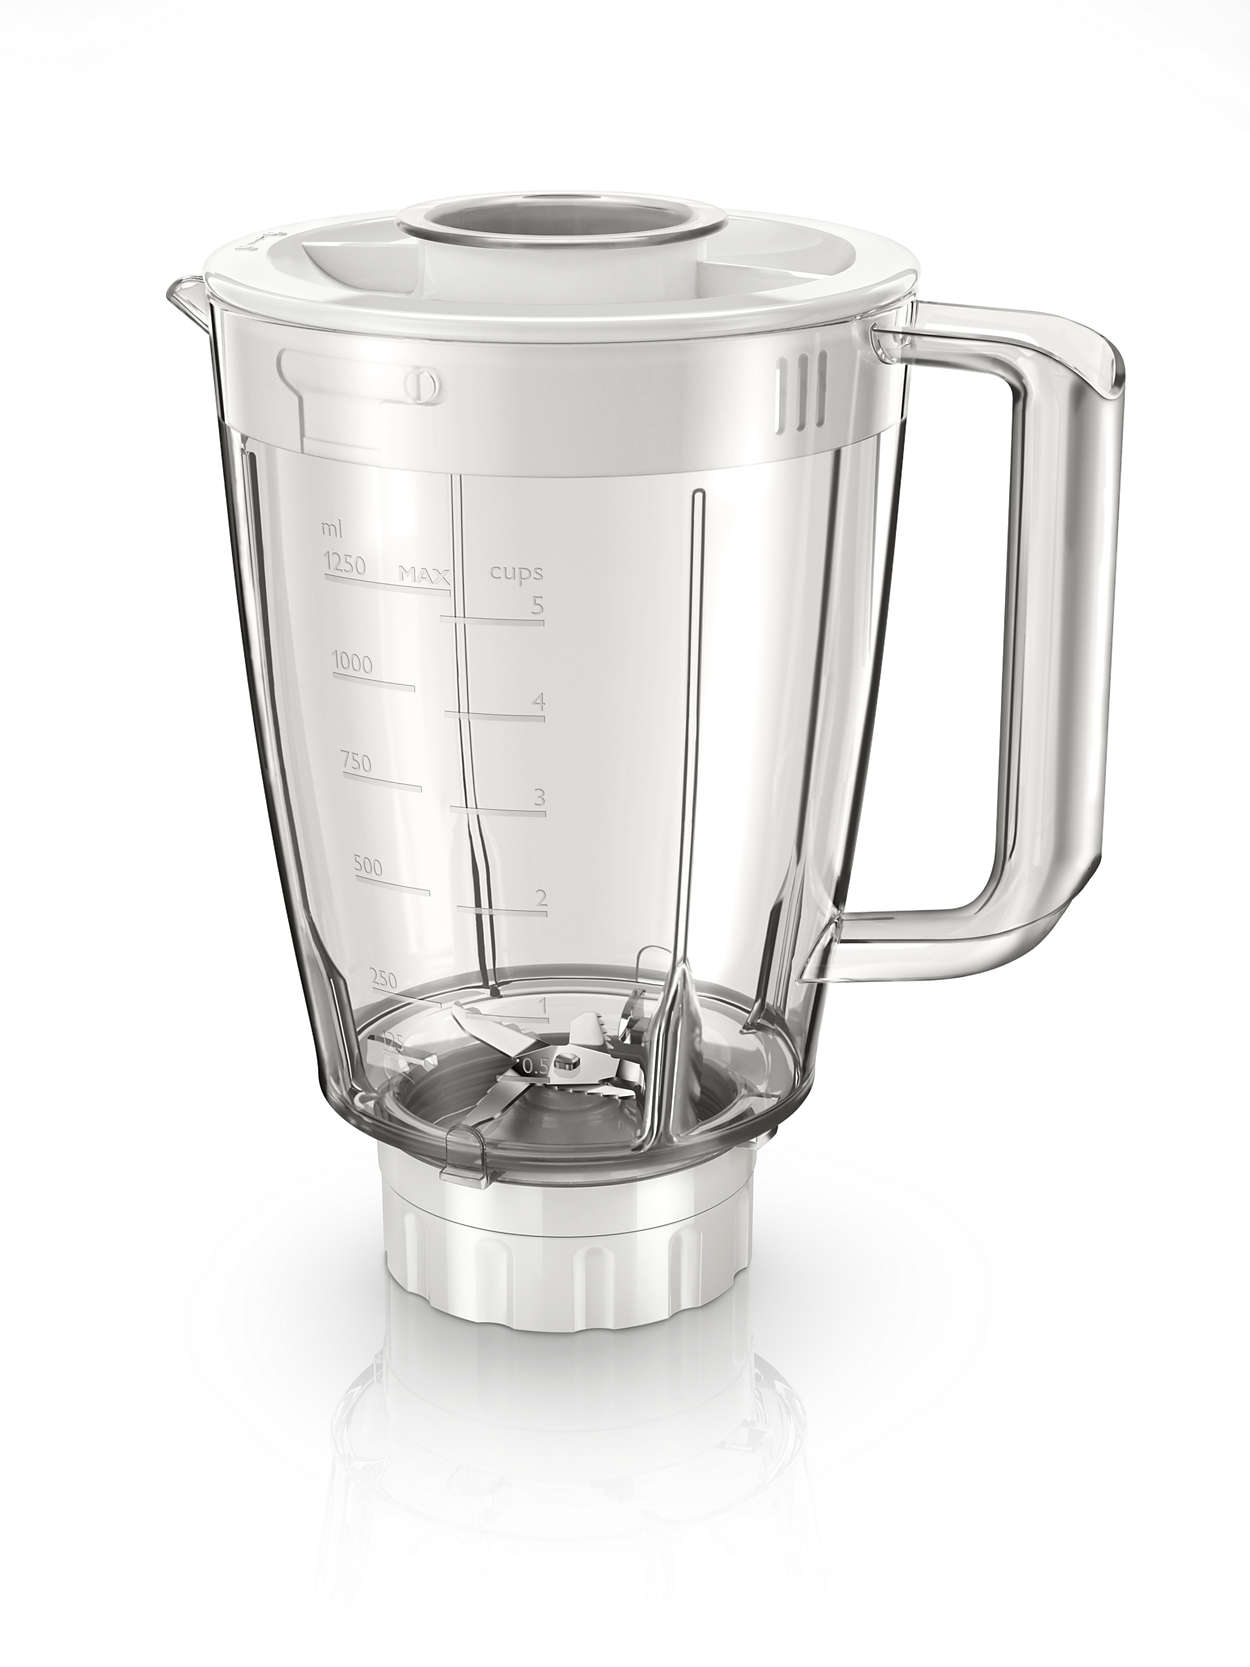 Extra jar with 5-stars blade for your blender